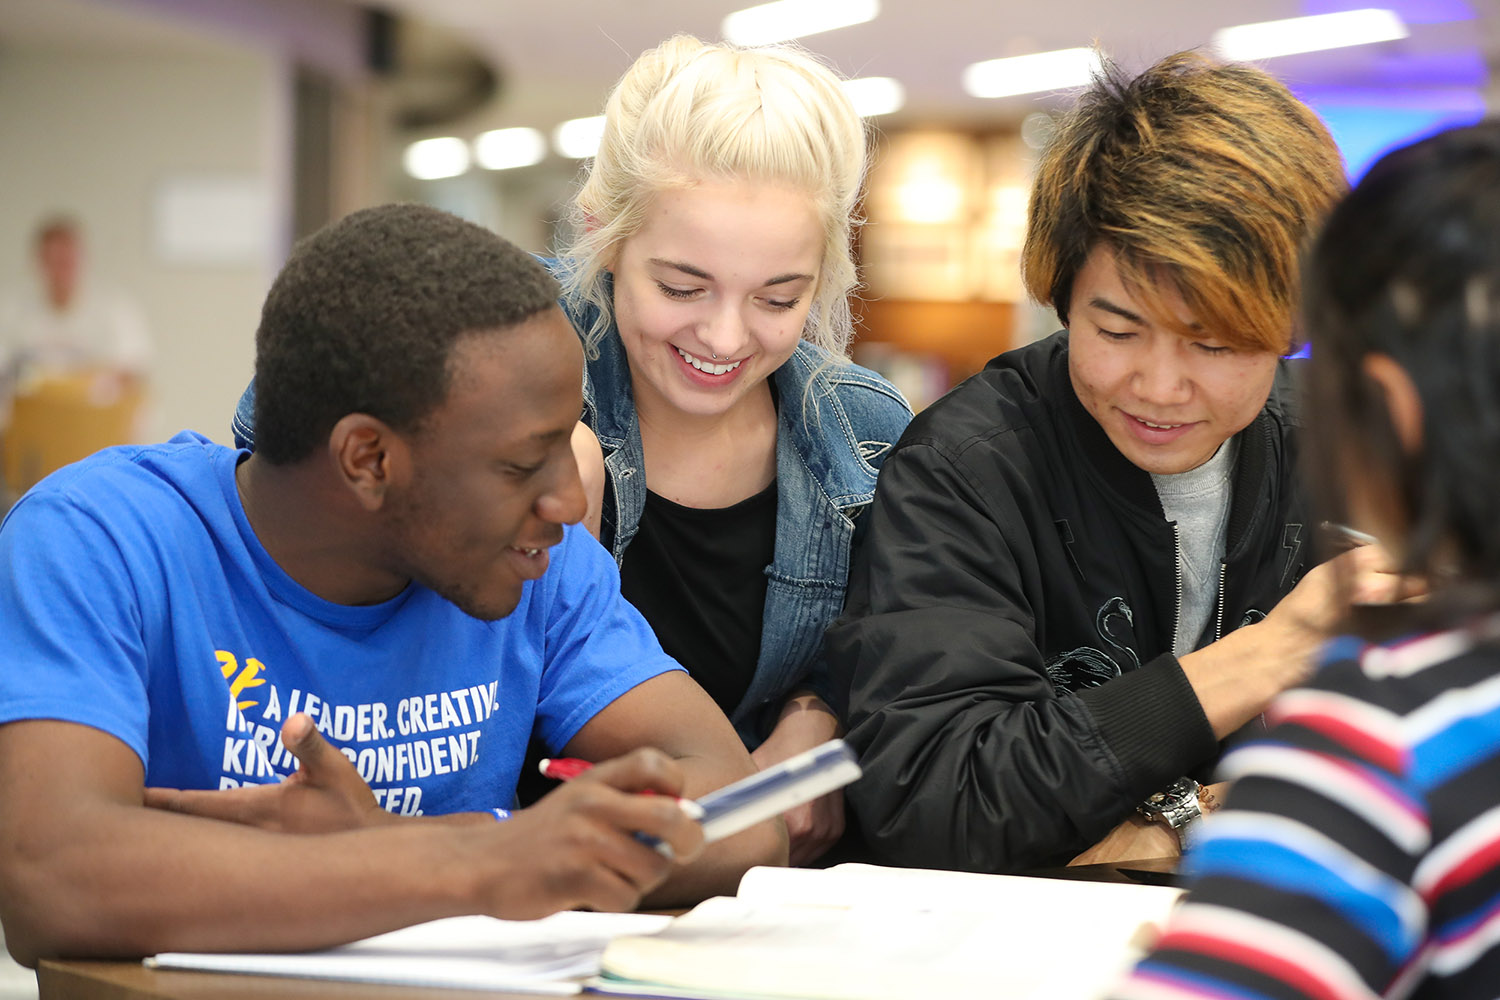 UNK's College of Education recently formed a Diversity, Equity, Inclusion and Social Justice Committee to enhance the university's larger efforts to diversify its student population and further promote an educational environment that provides equal opportunities for all individuals.